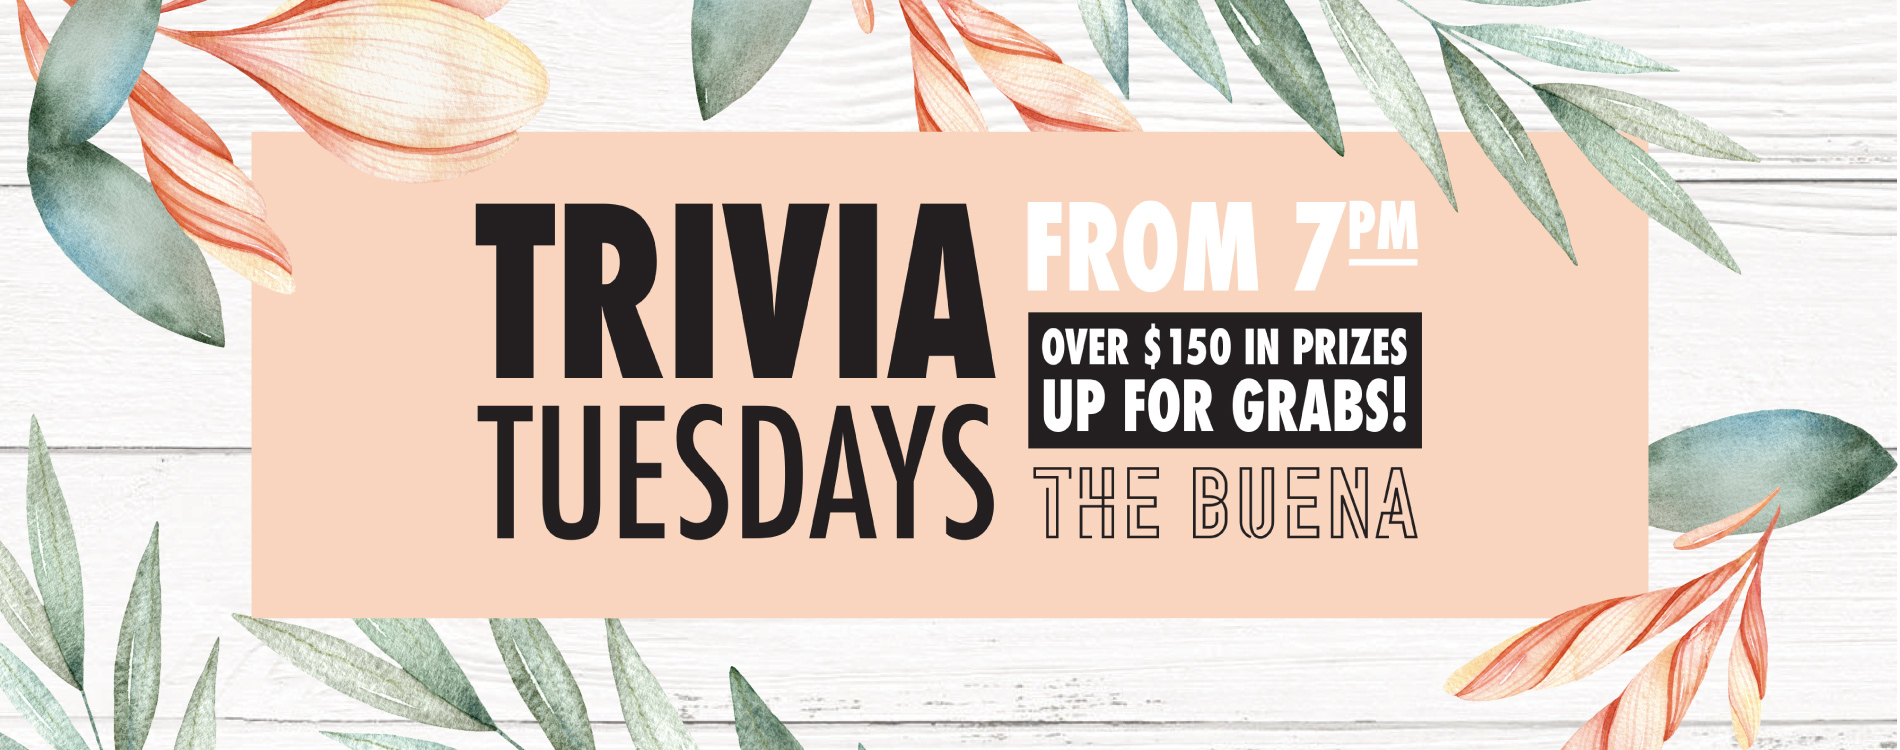 Trivia Tuesdays at the Buena from 7pm